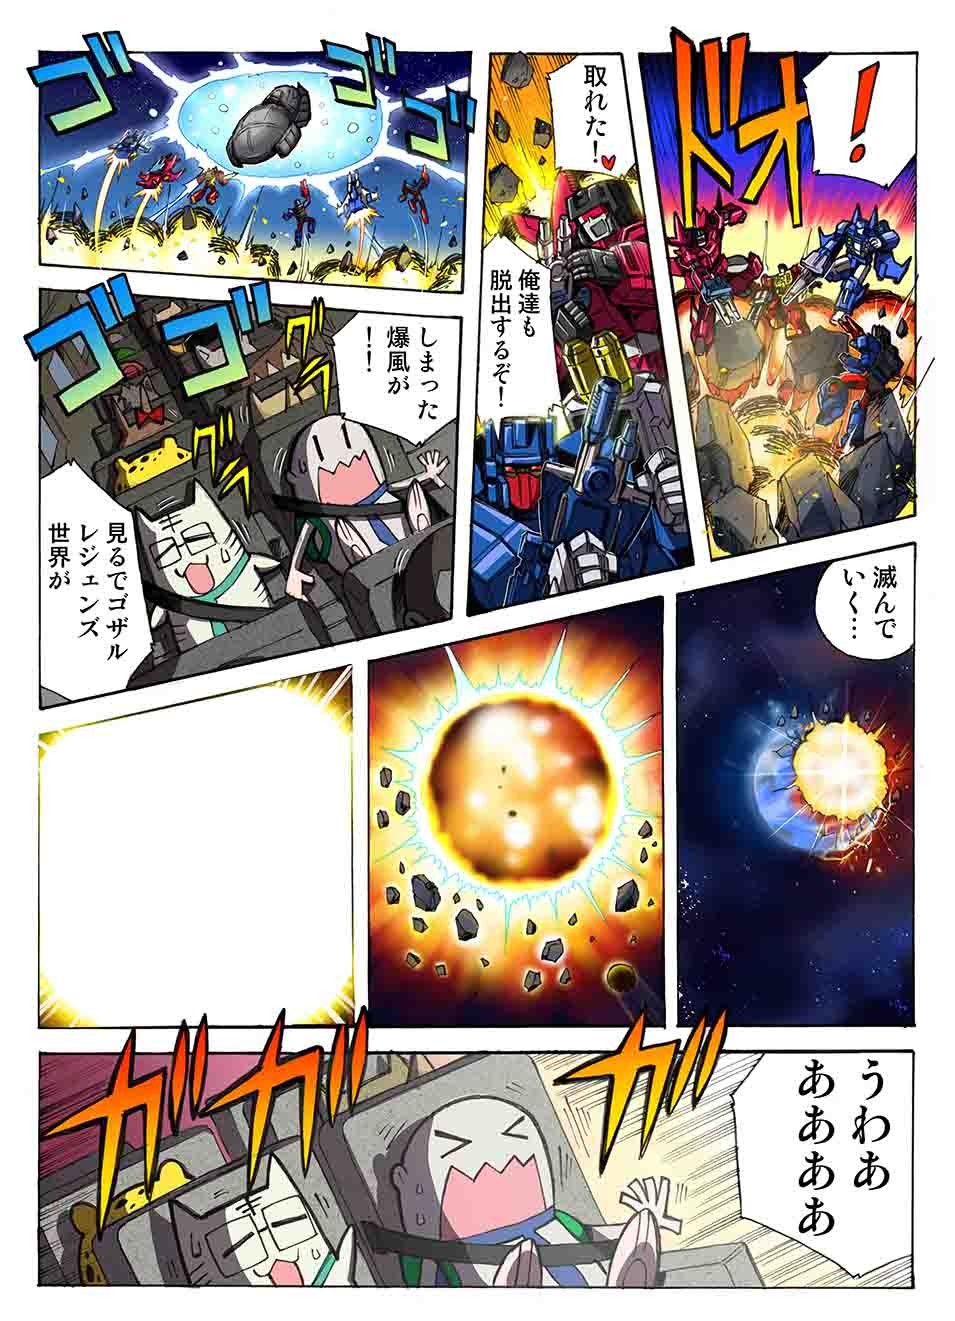 Transformers News: Takara Tomy Transformers Legends Manga Chapter 53 Now Online